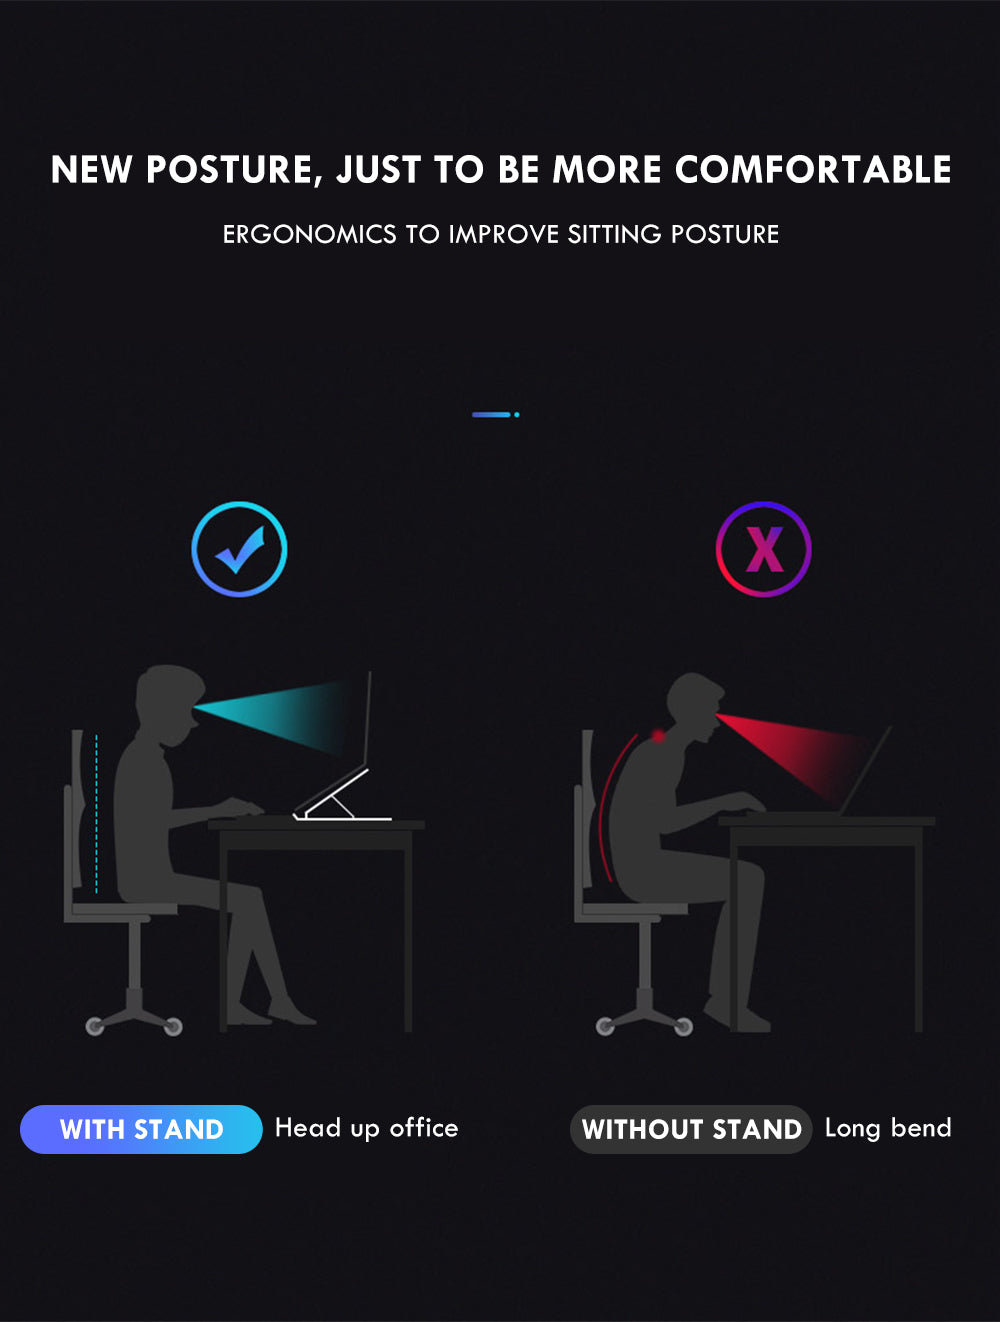 MacBook Desk Stand Adjustable Height Non-Slip Universal Laptop Stand For Raising The Laptop On Table To Improve Posture Also Suitable For Tablets & Notebooks